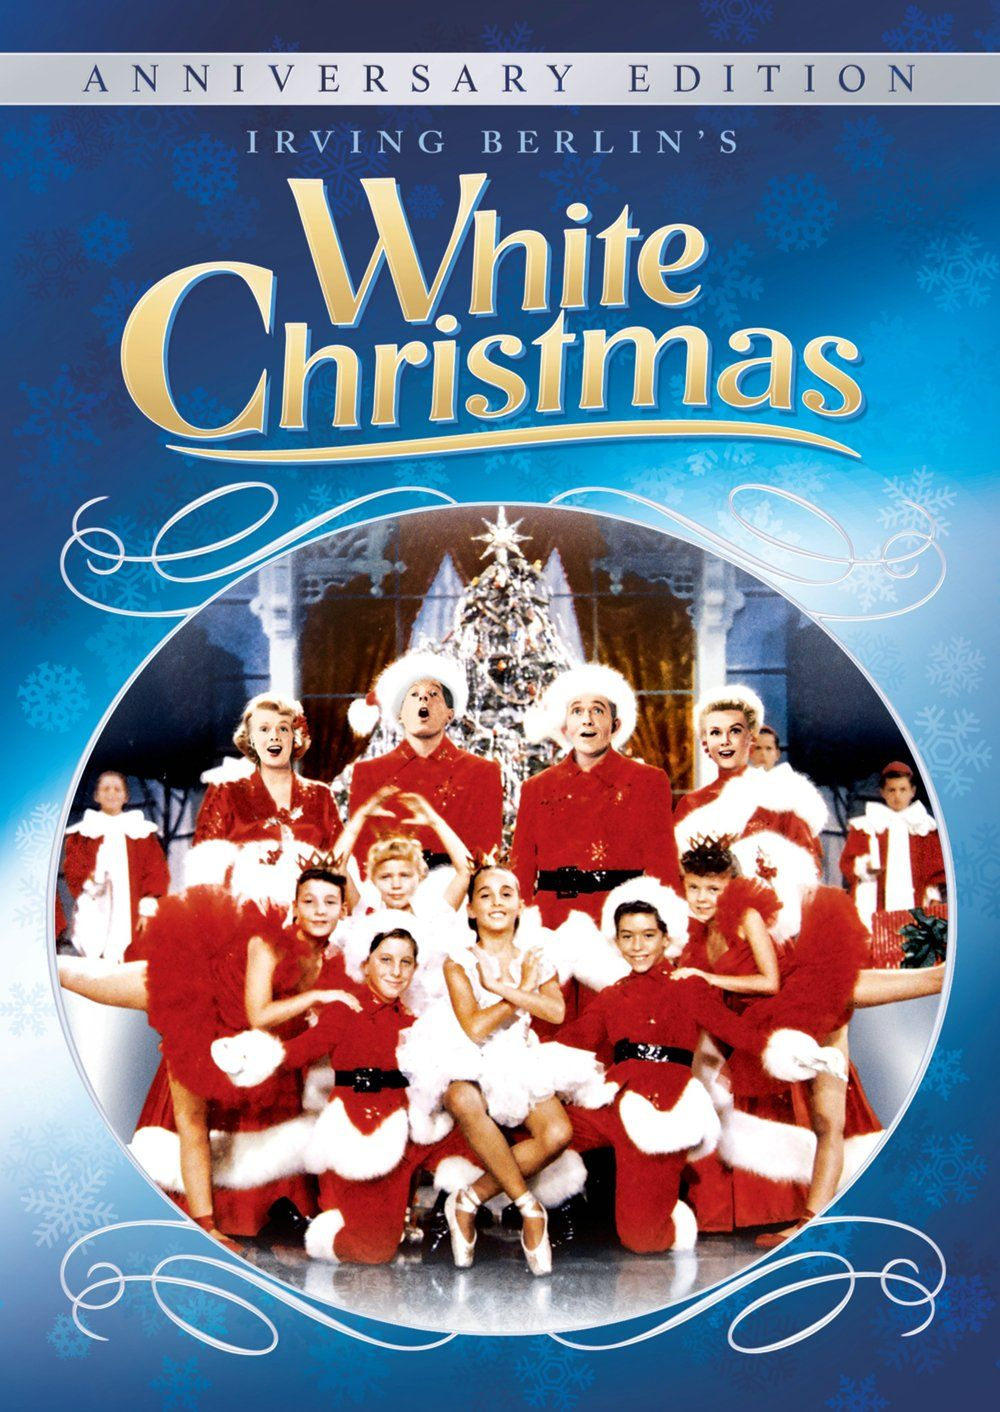 white christmas anniversary edition - When Was White Christmas Filmed